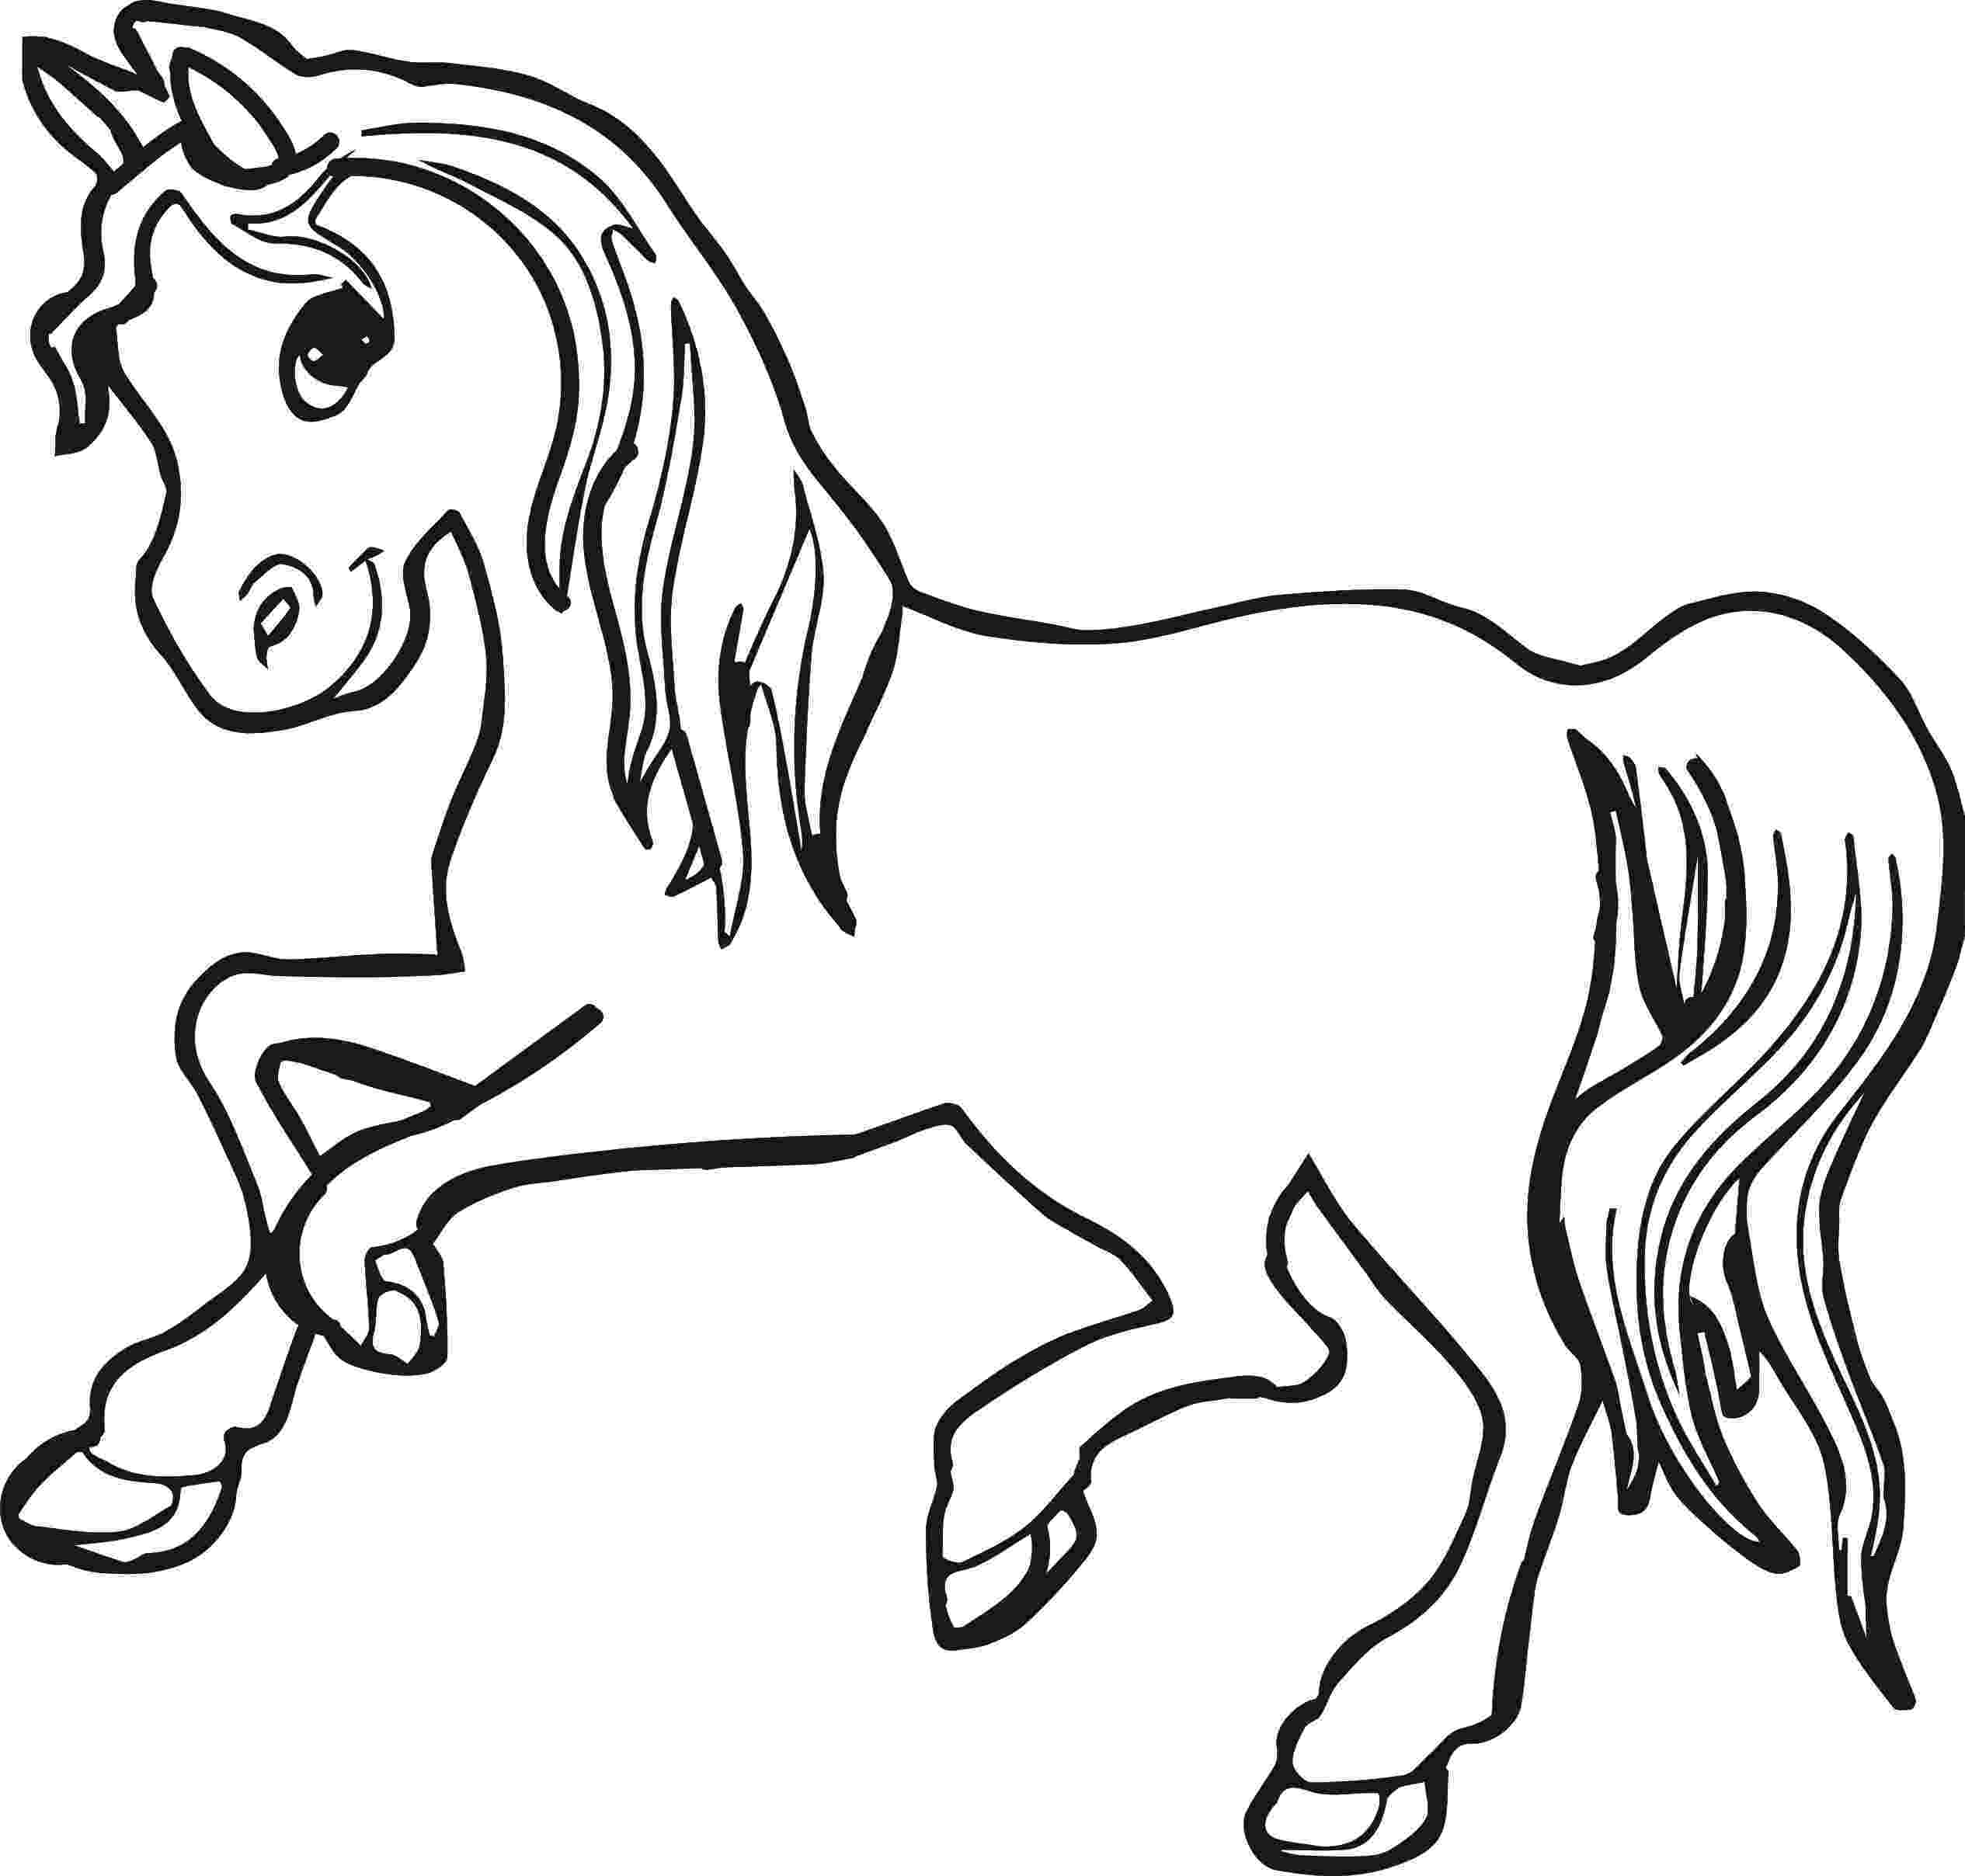 picture of a horse to color fun horse coloring pages for your kids printable horse to color a of picture